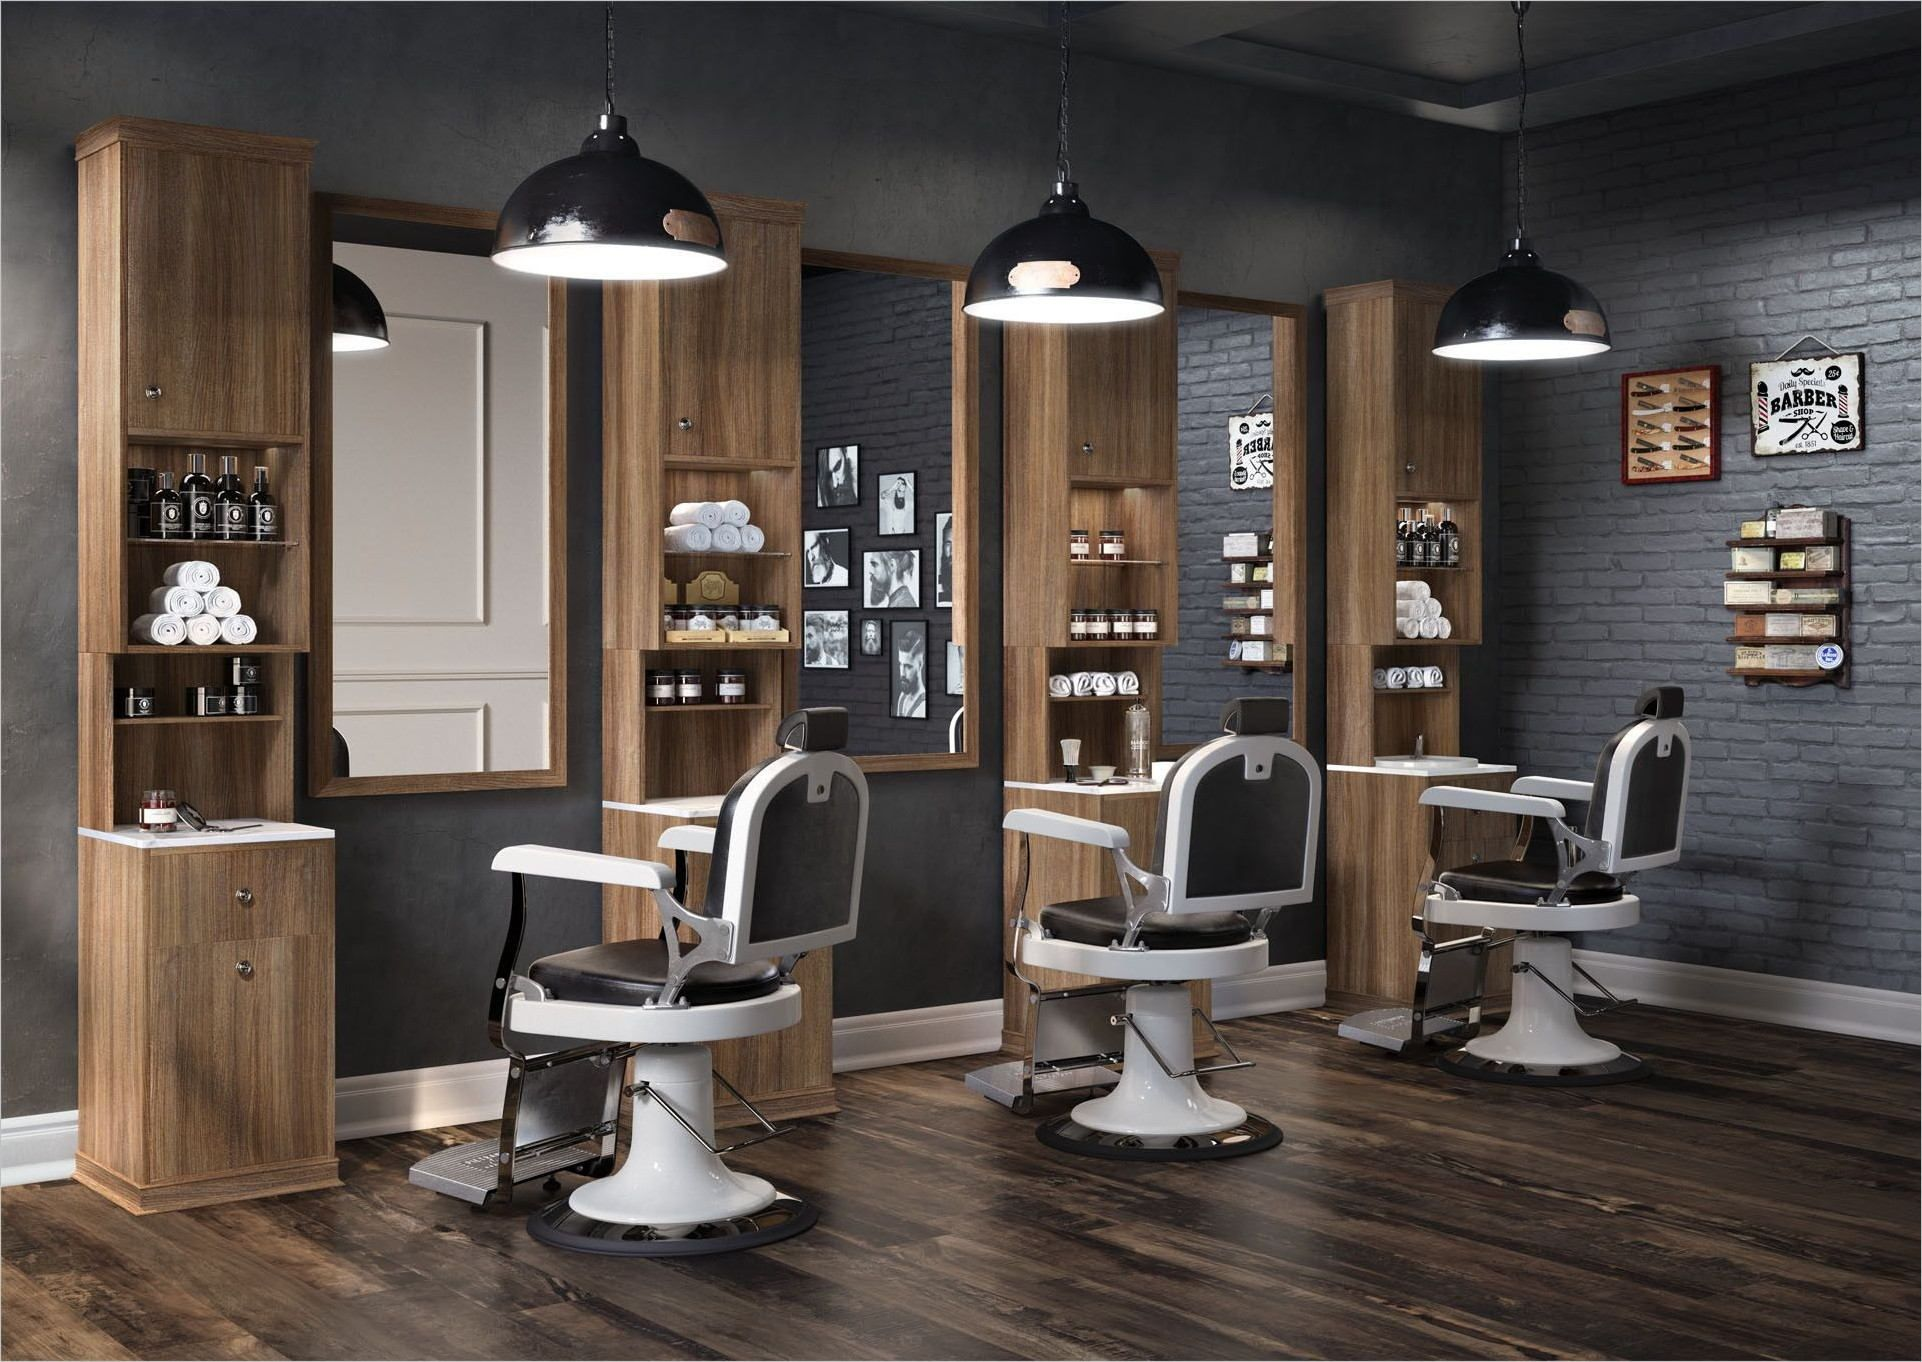 Pin On Spa Barber Beauty Salon